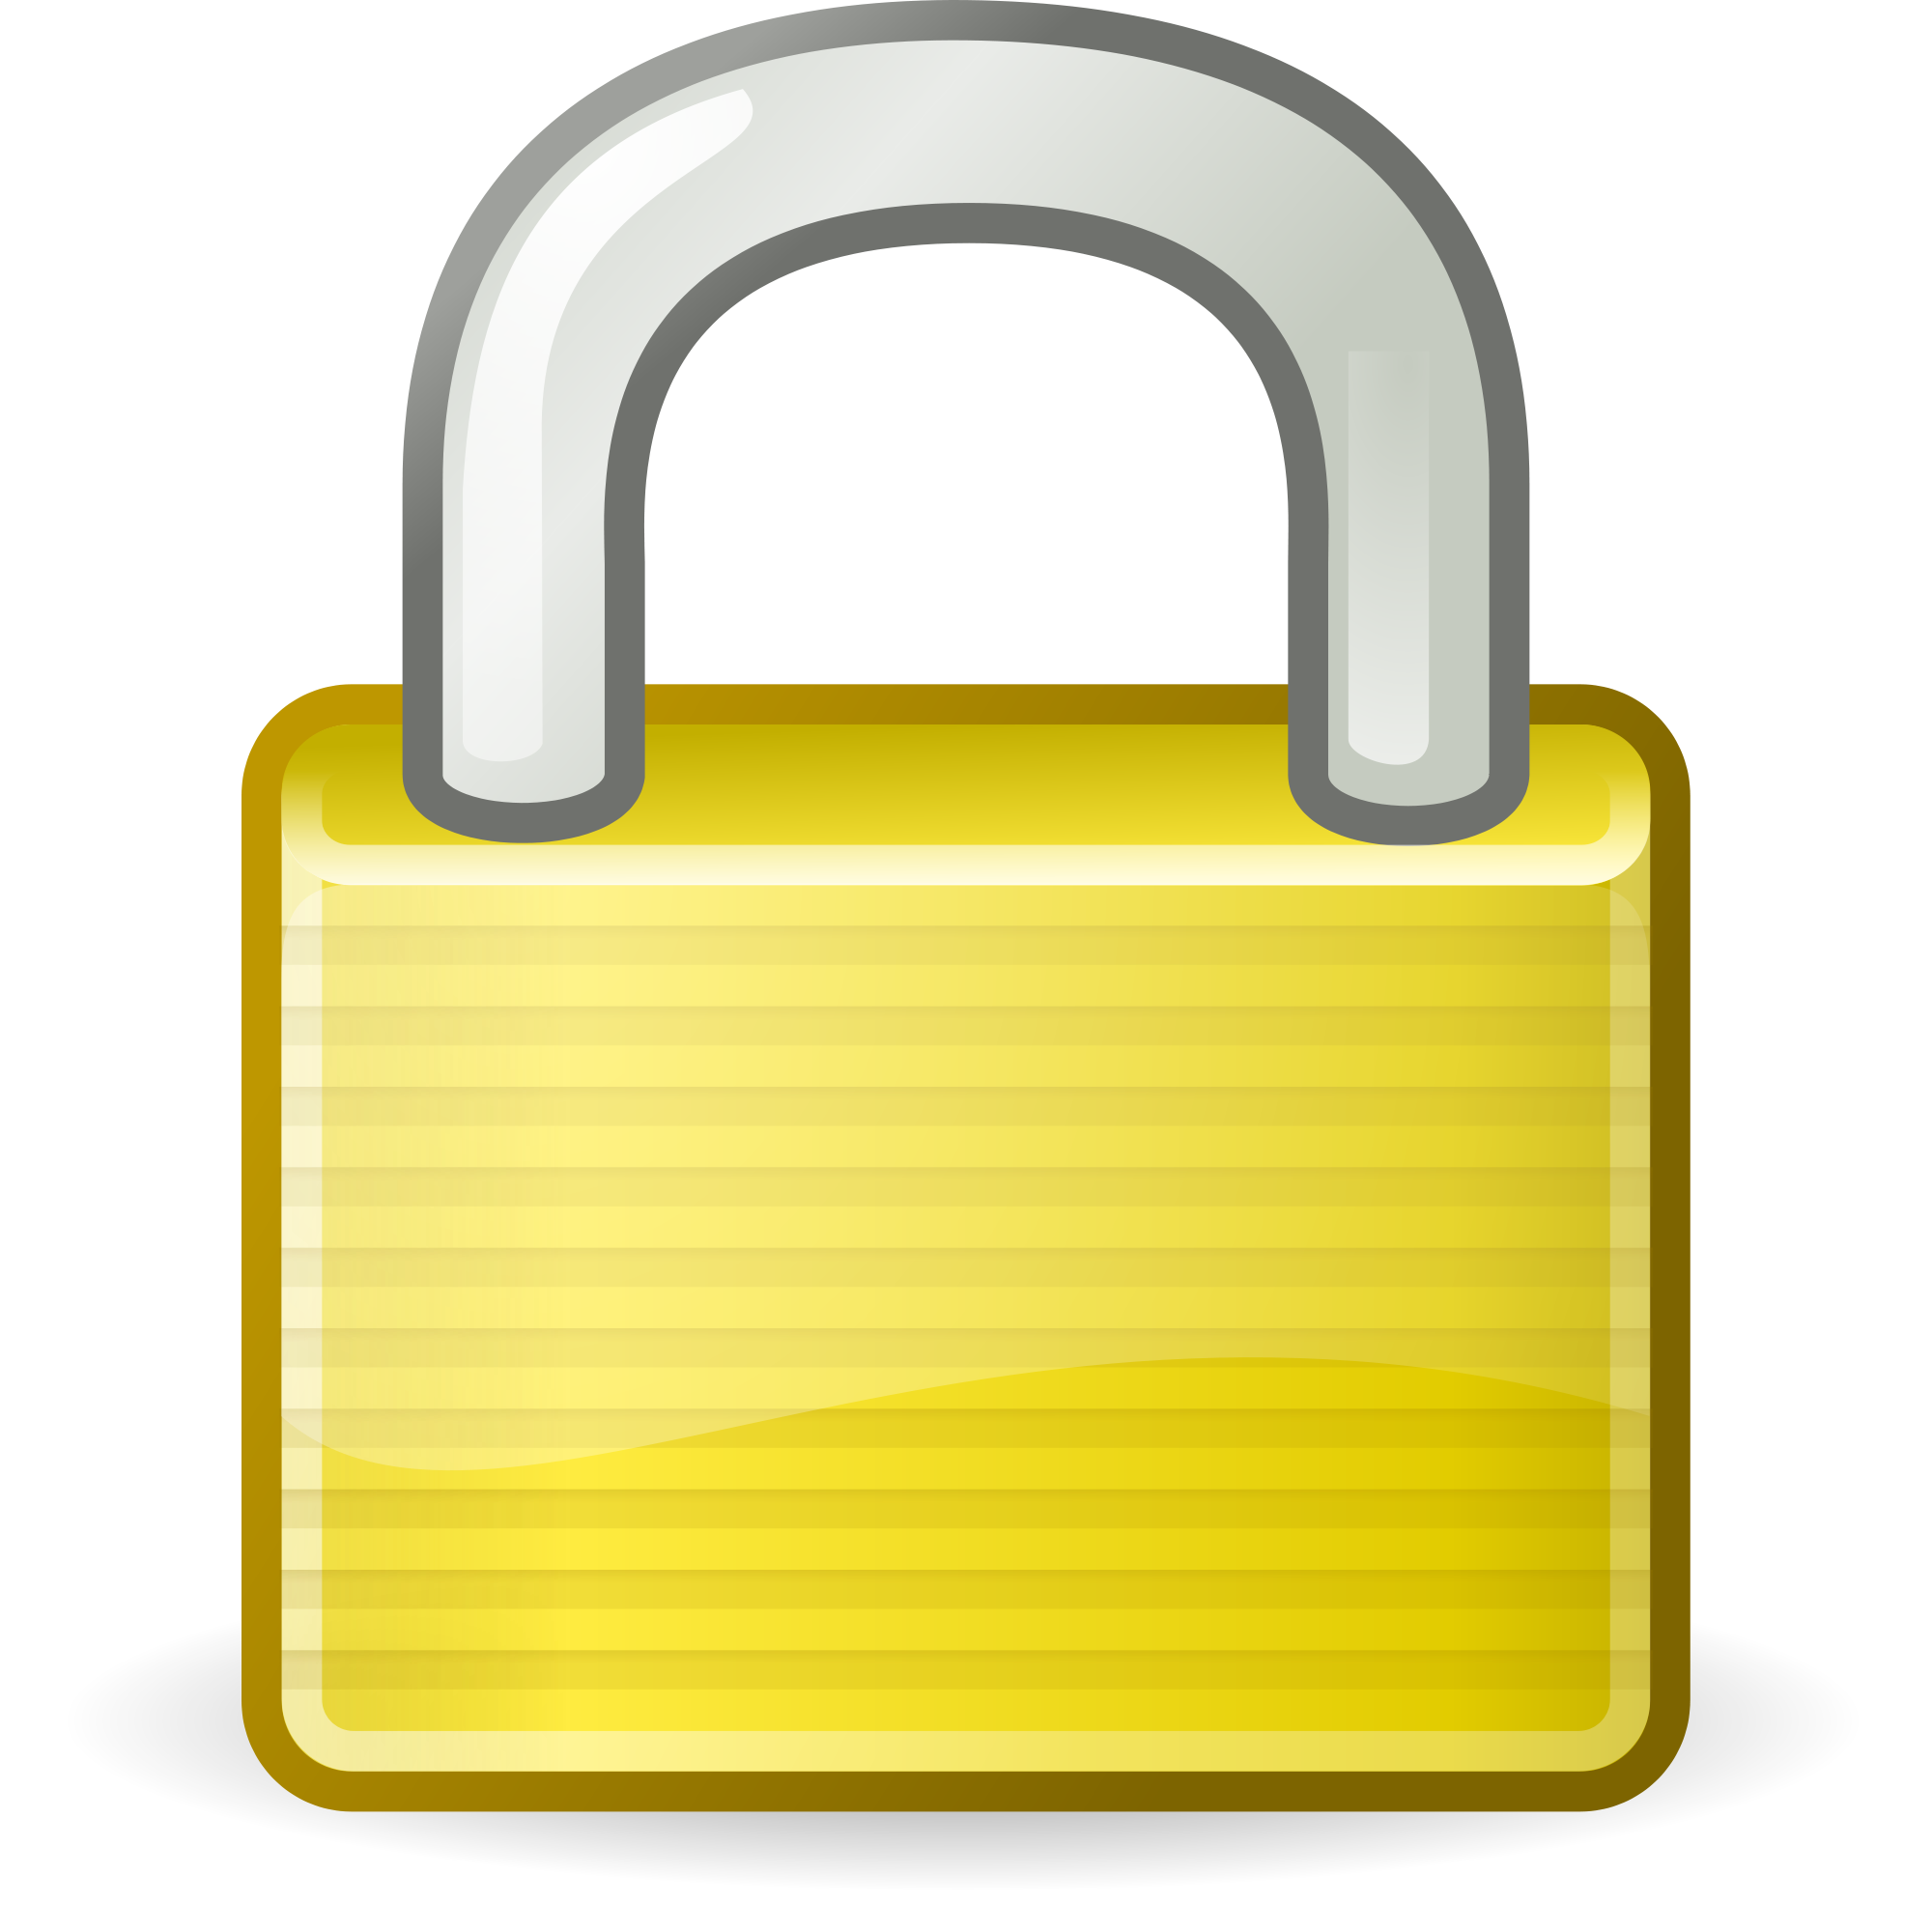 File:Locked.svg - Wikimedia Commons